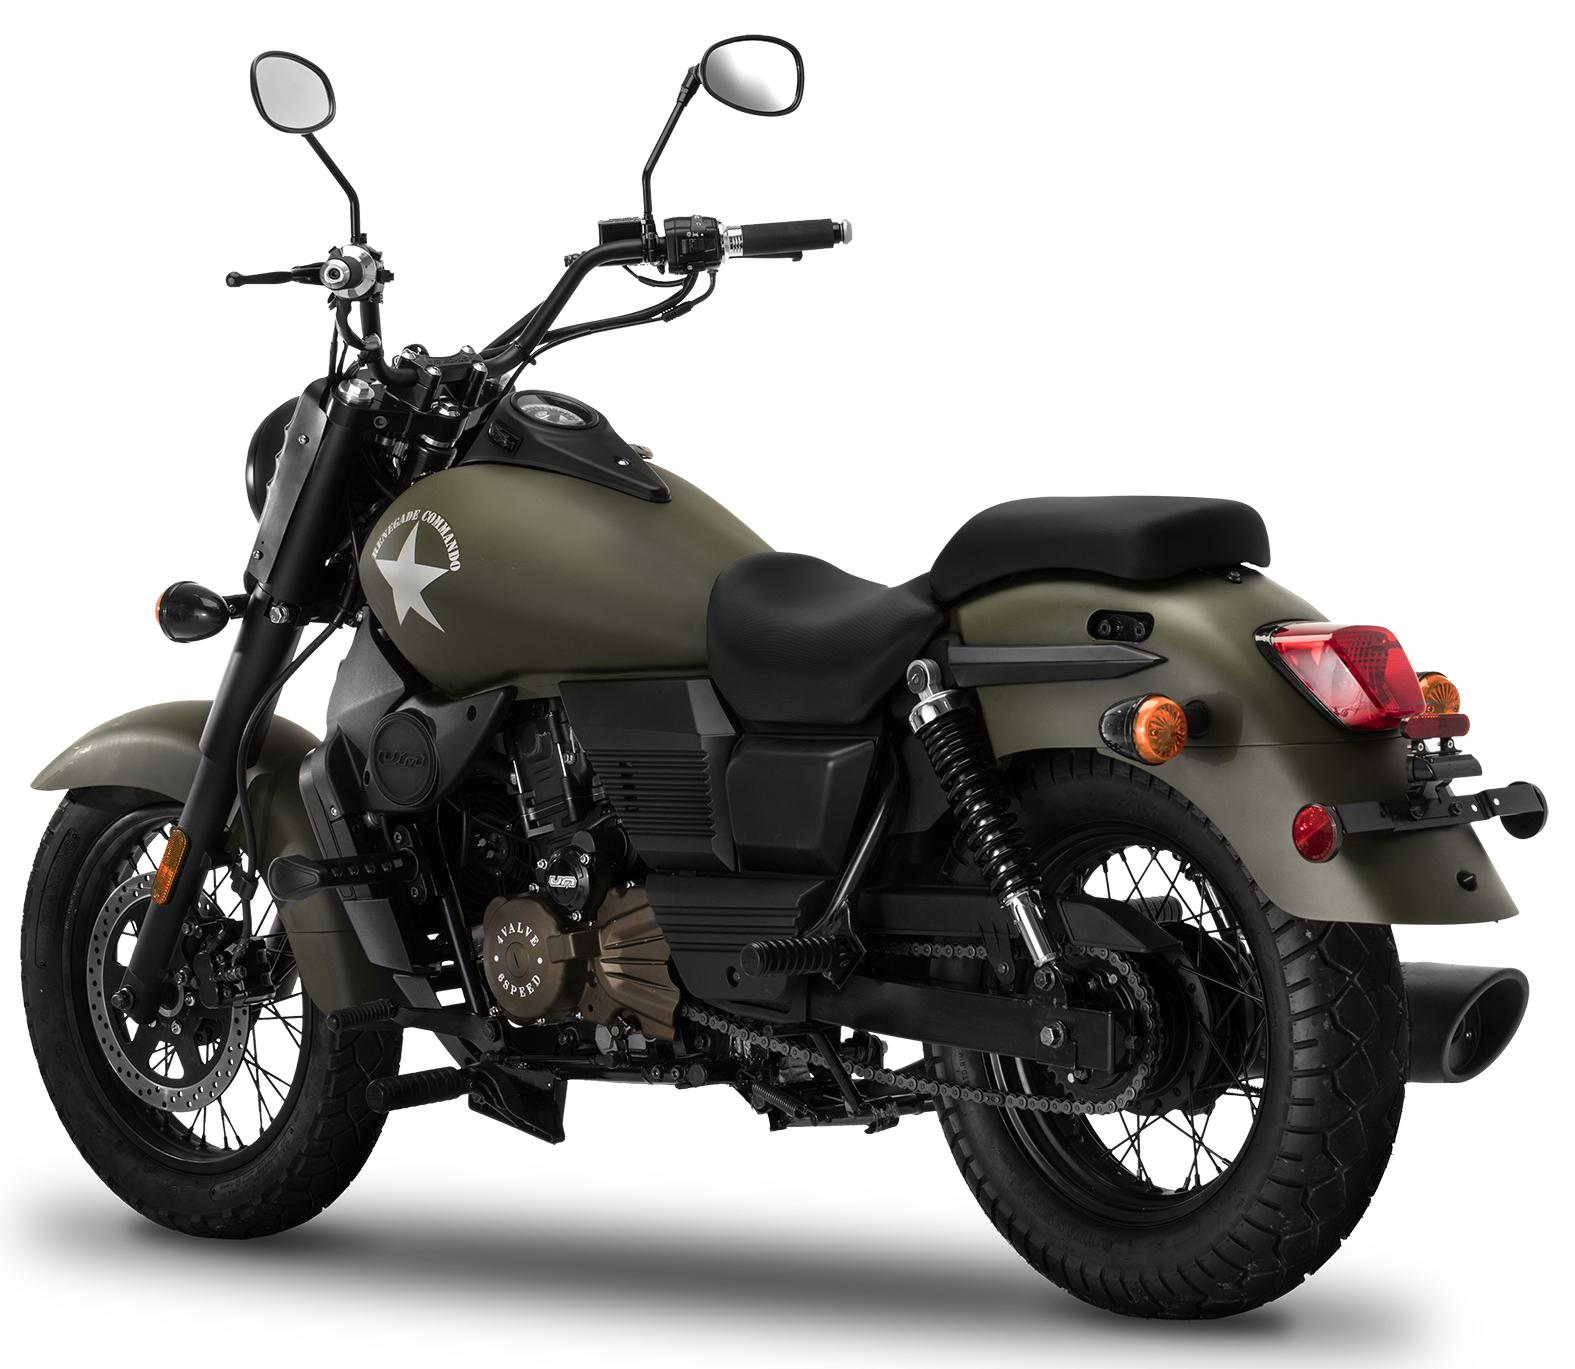 Renegade Commando 300 Reservation Fee Only Lazada Ph